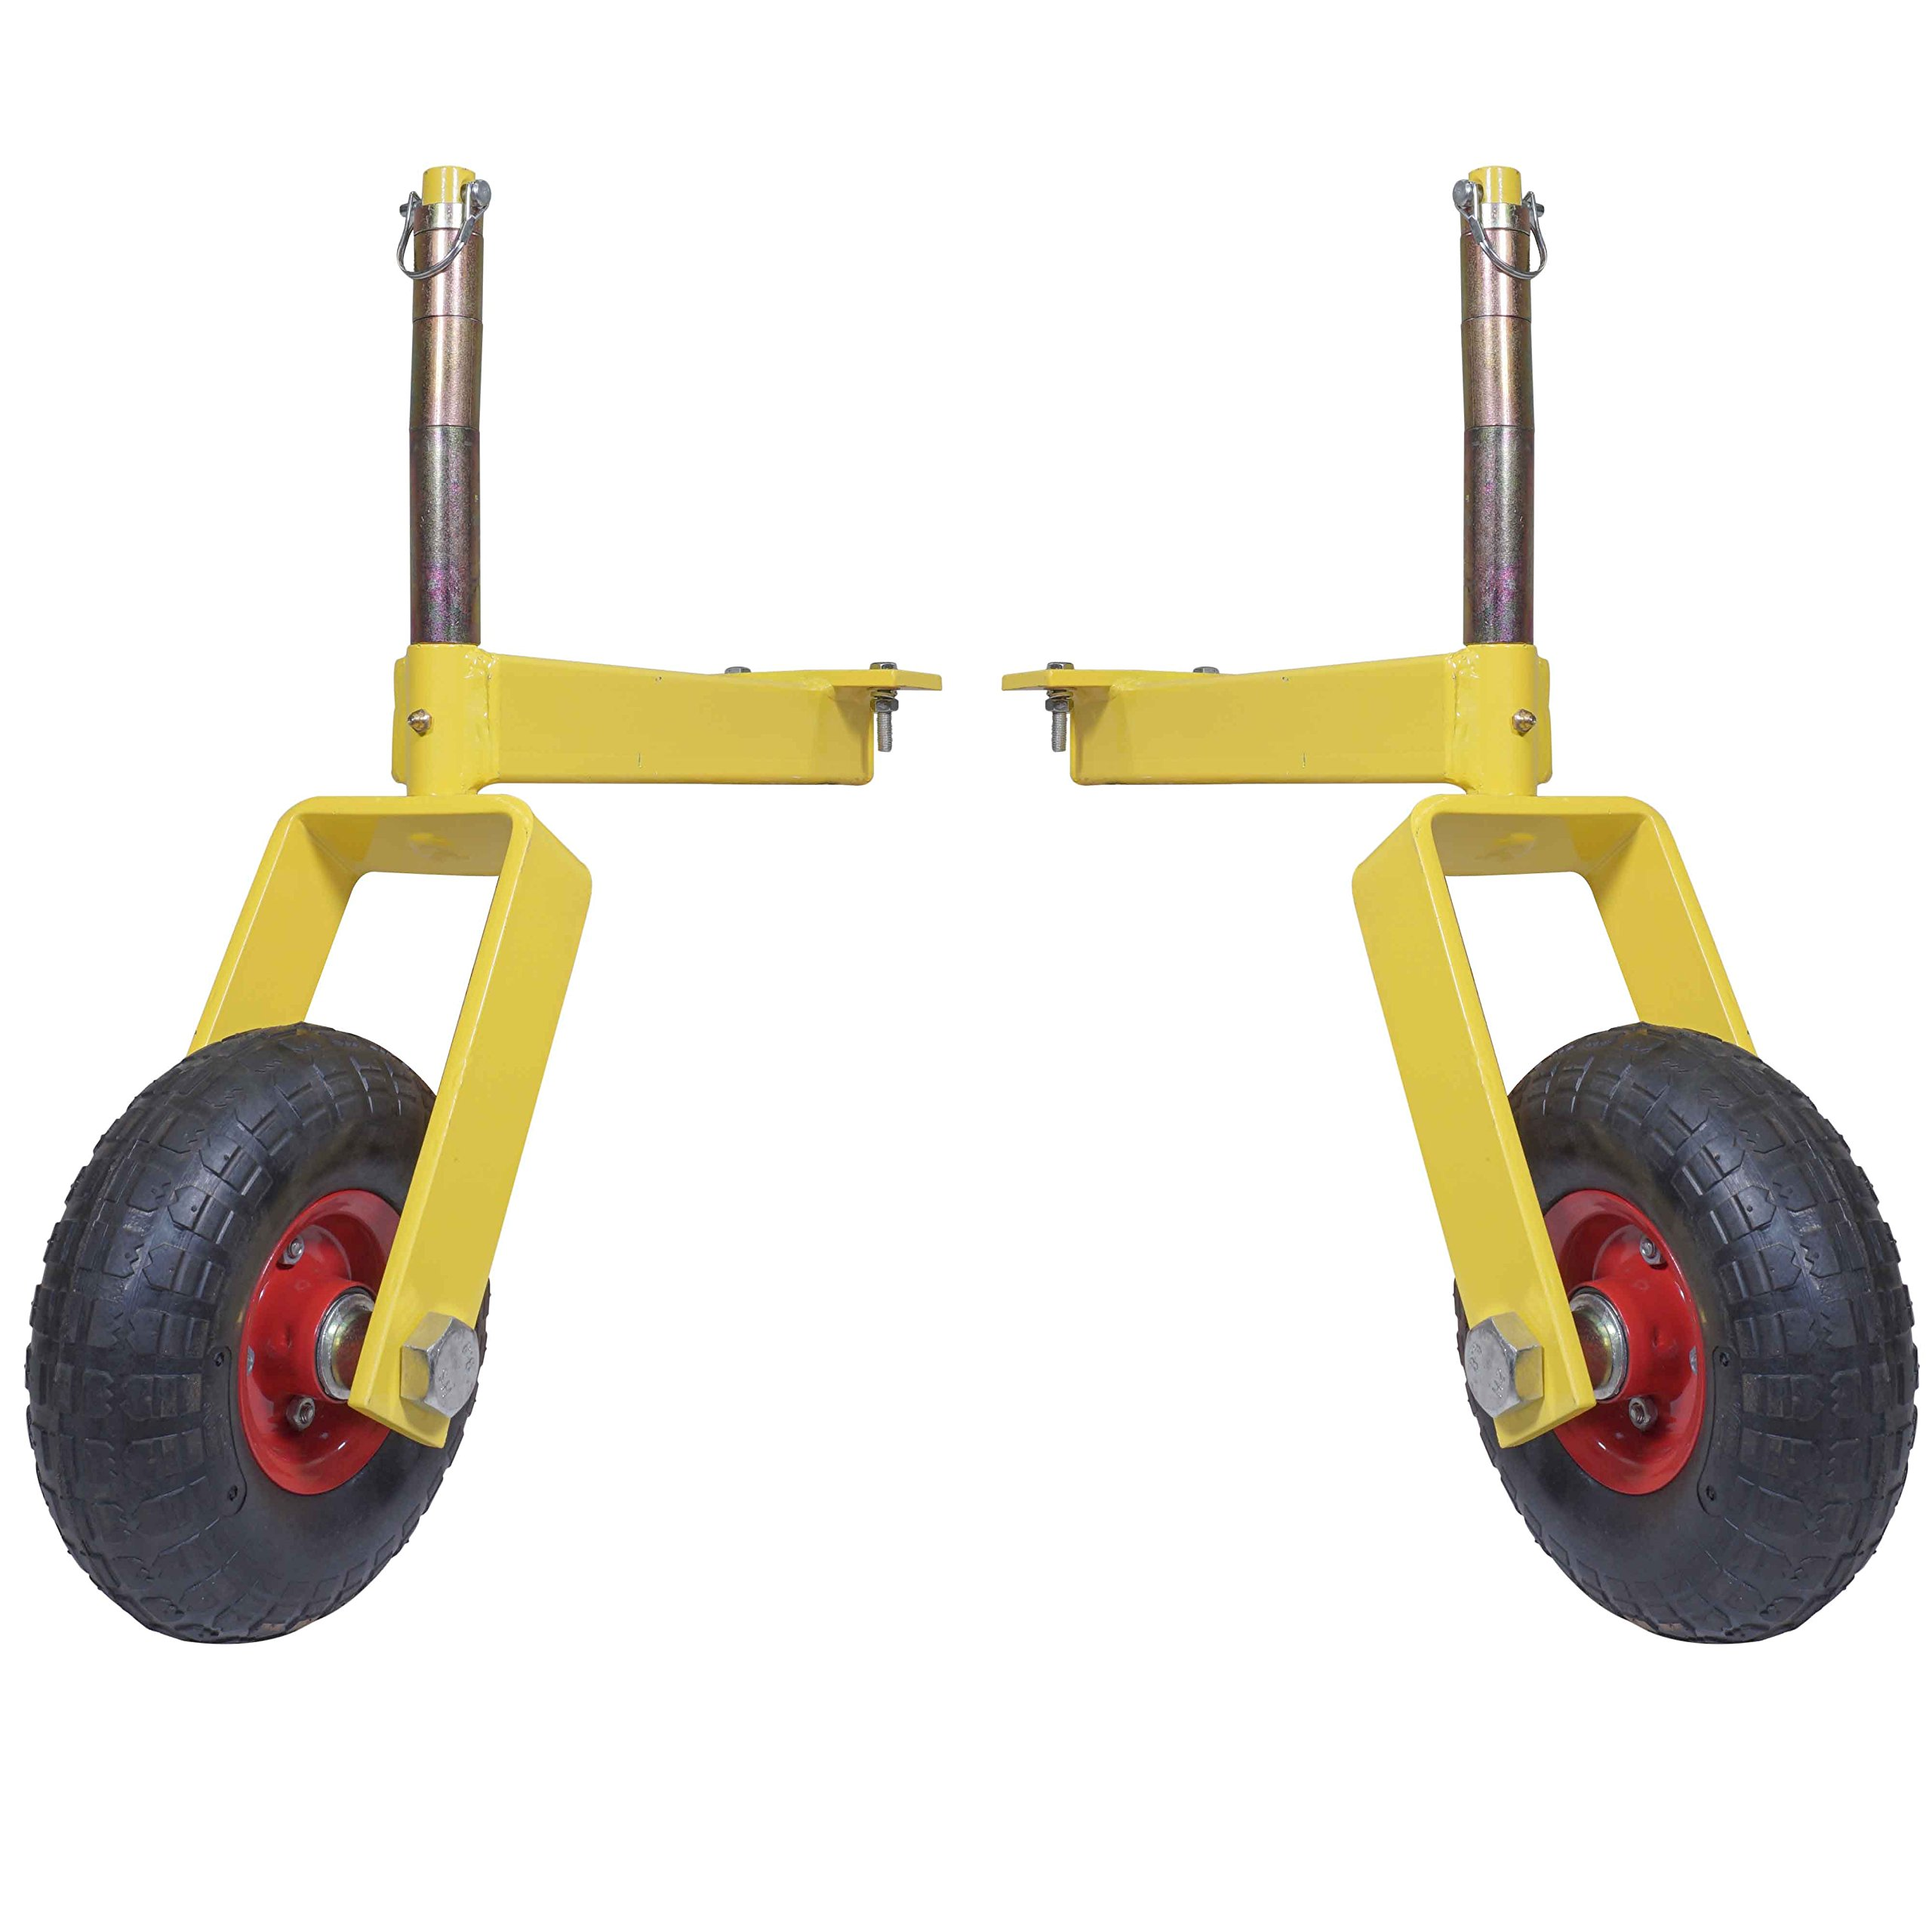 Pair of Titan Landscape Rake Wheel Attachments Adjustable Height by Titan Attachments (Image #1)